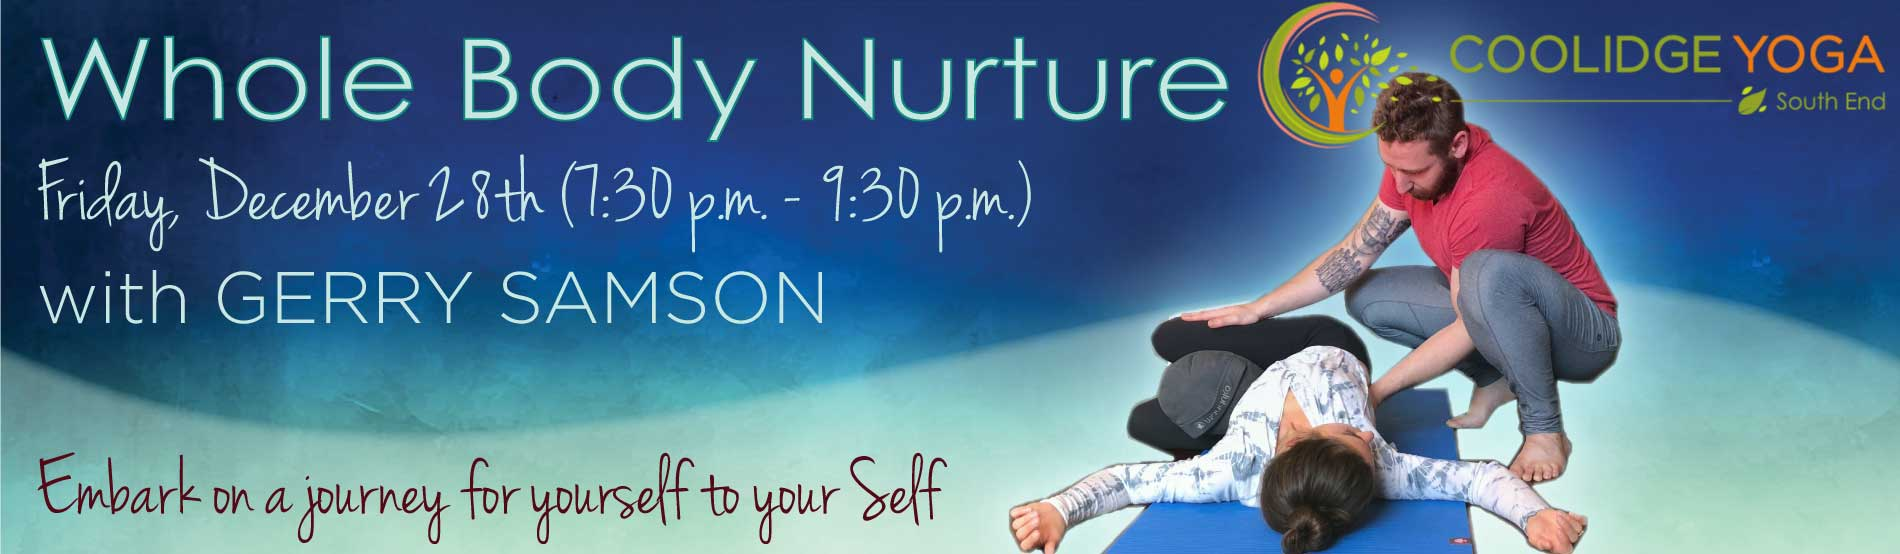 Whole body nurture with Gerard Samson at Coolidge Yoga